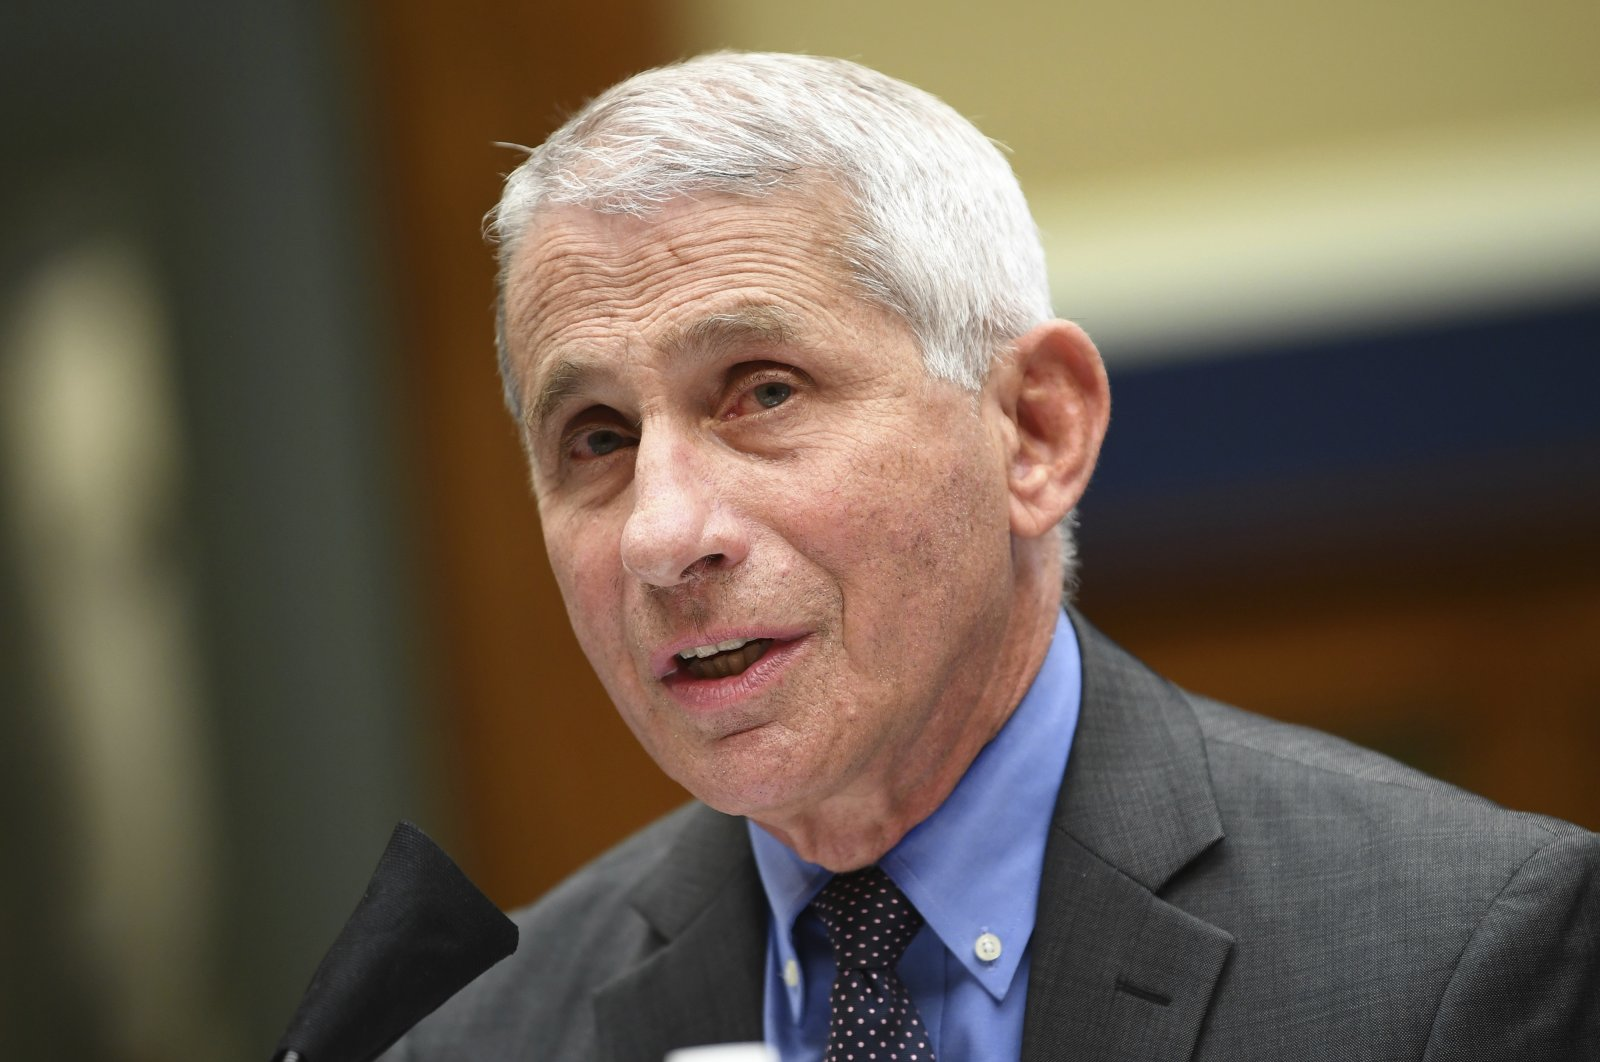 Director of the National Institute of Allergy and Infectious Diseases Dr. Anthony Fauci testifies before a House Committee on Energy and Commerce on the Trump administration's response to the COVID-19 pandemic on Capitol Hill in Washington on Tuesday, June 23, 2020. (Pool via AP)